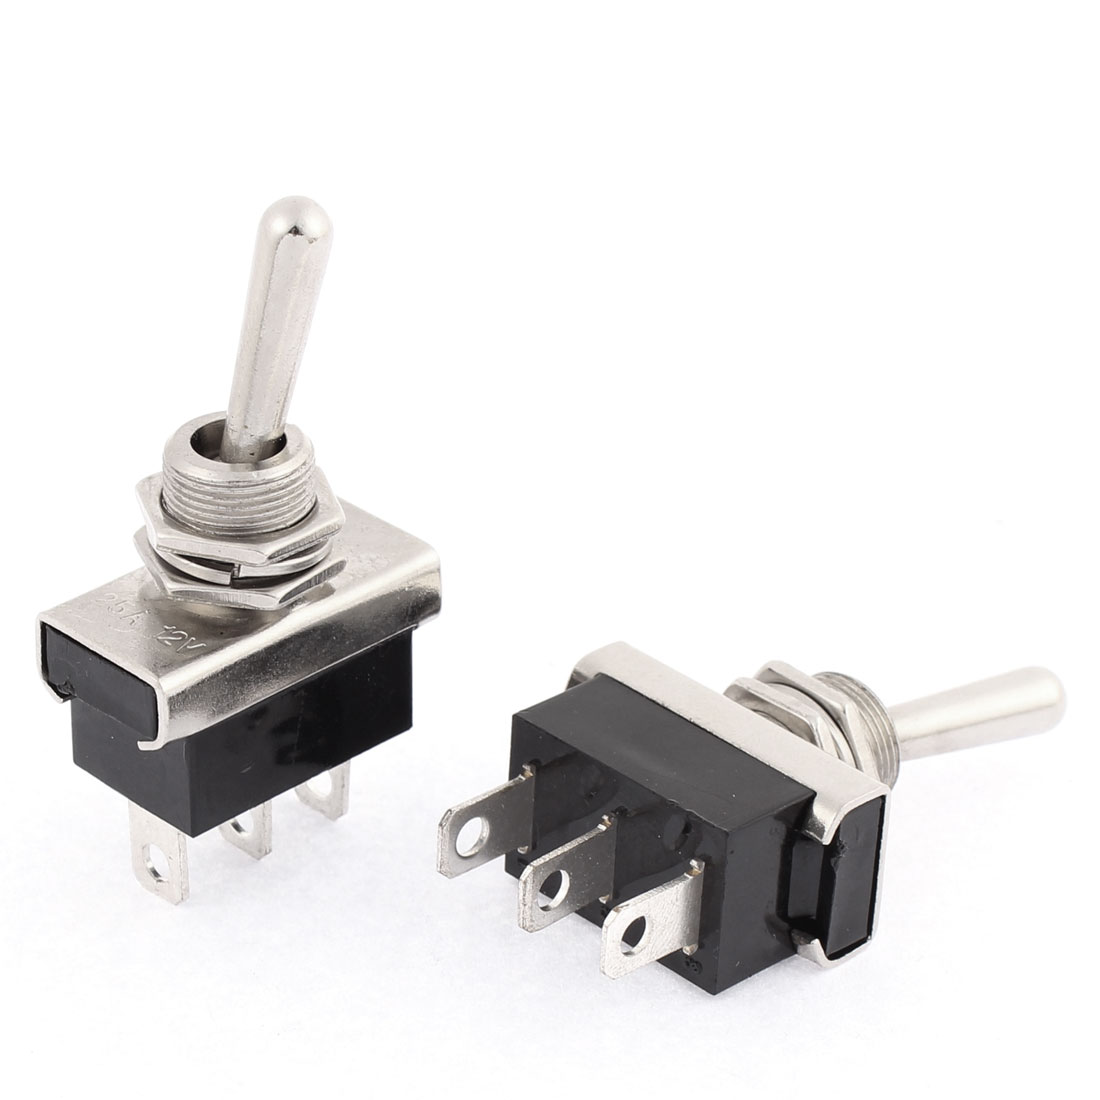 DC 12V 25A Car Automobile On/Off 2 Position 3 Pin Toggle Switch 2 Pcs